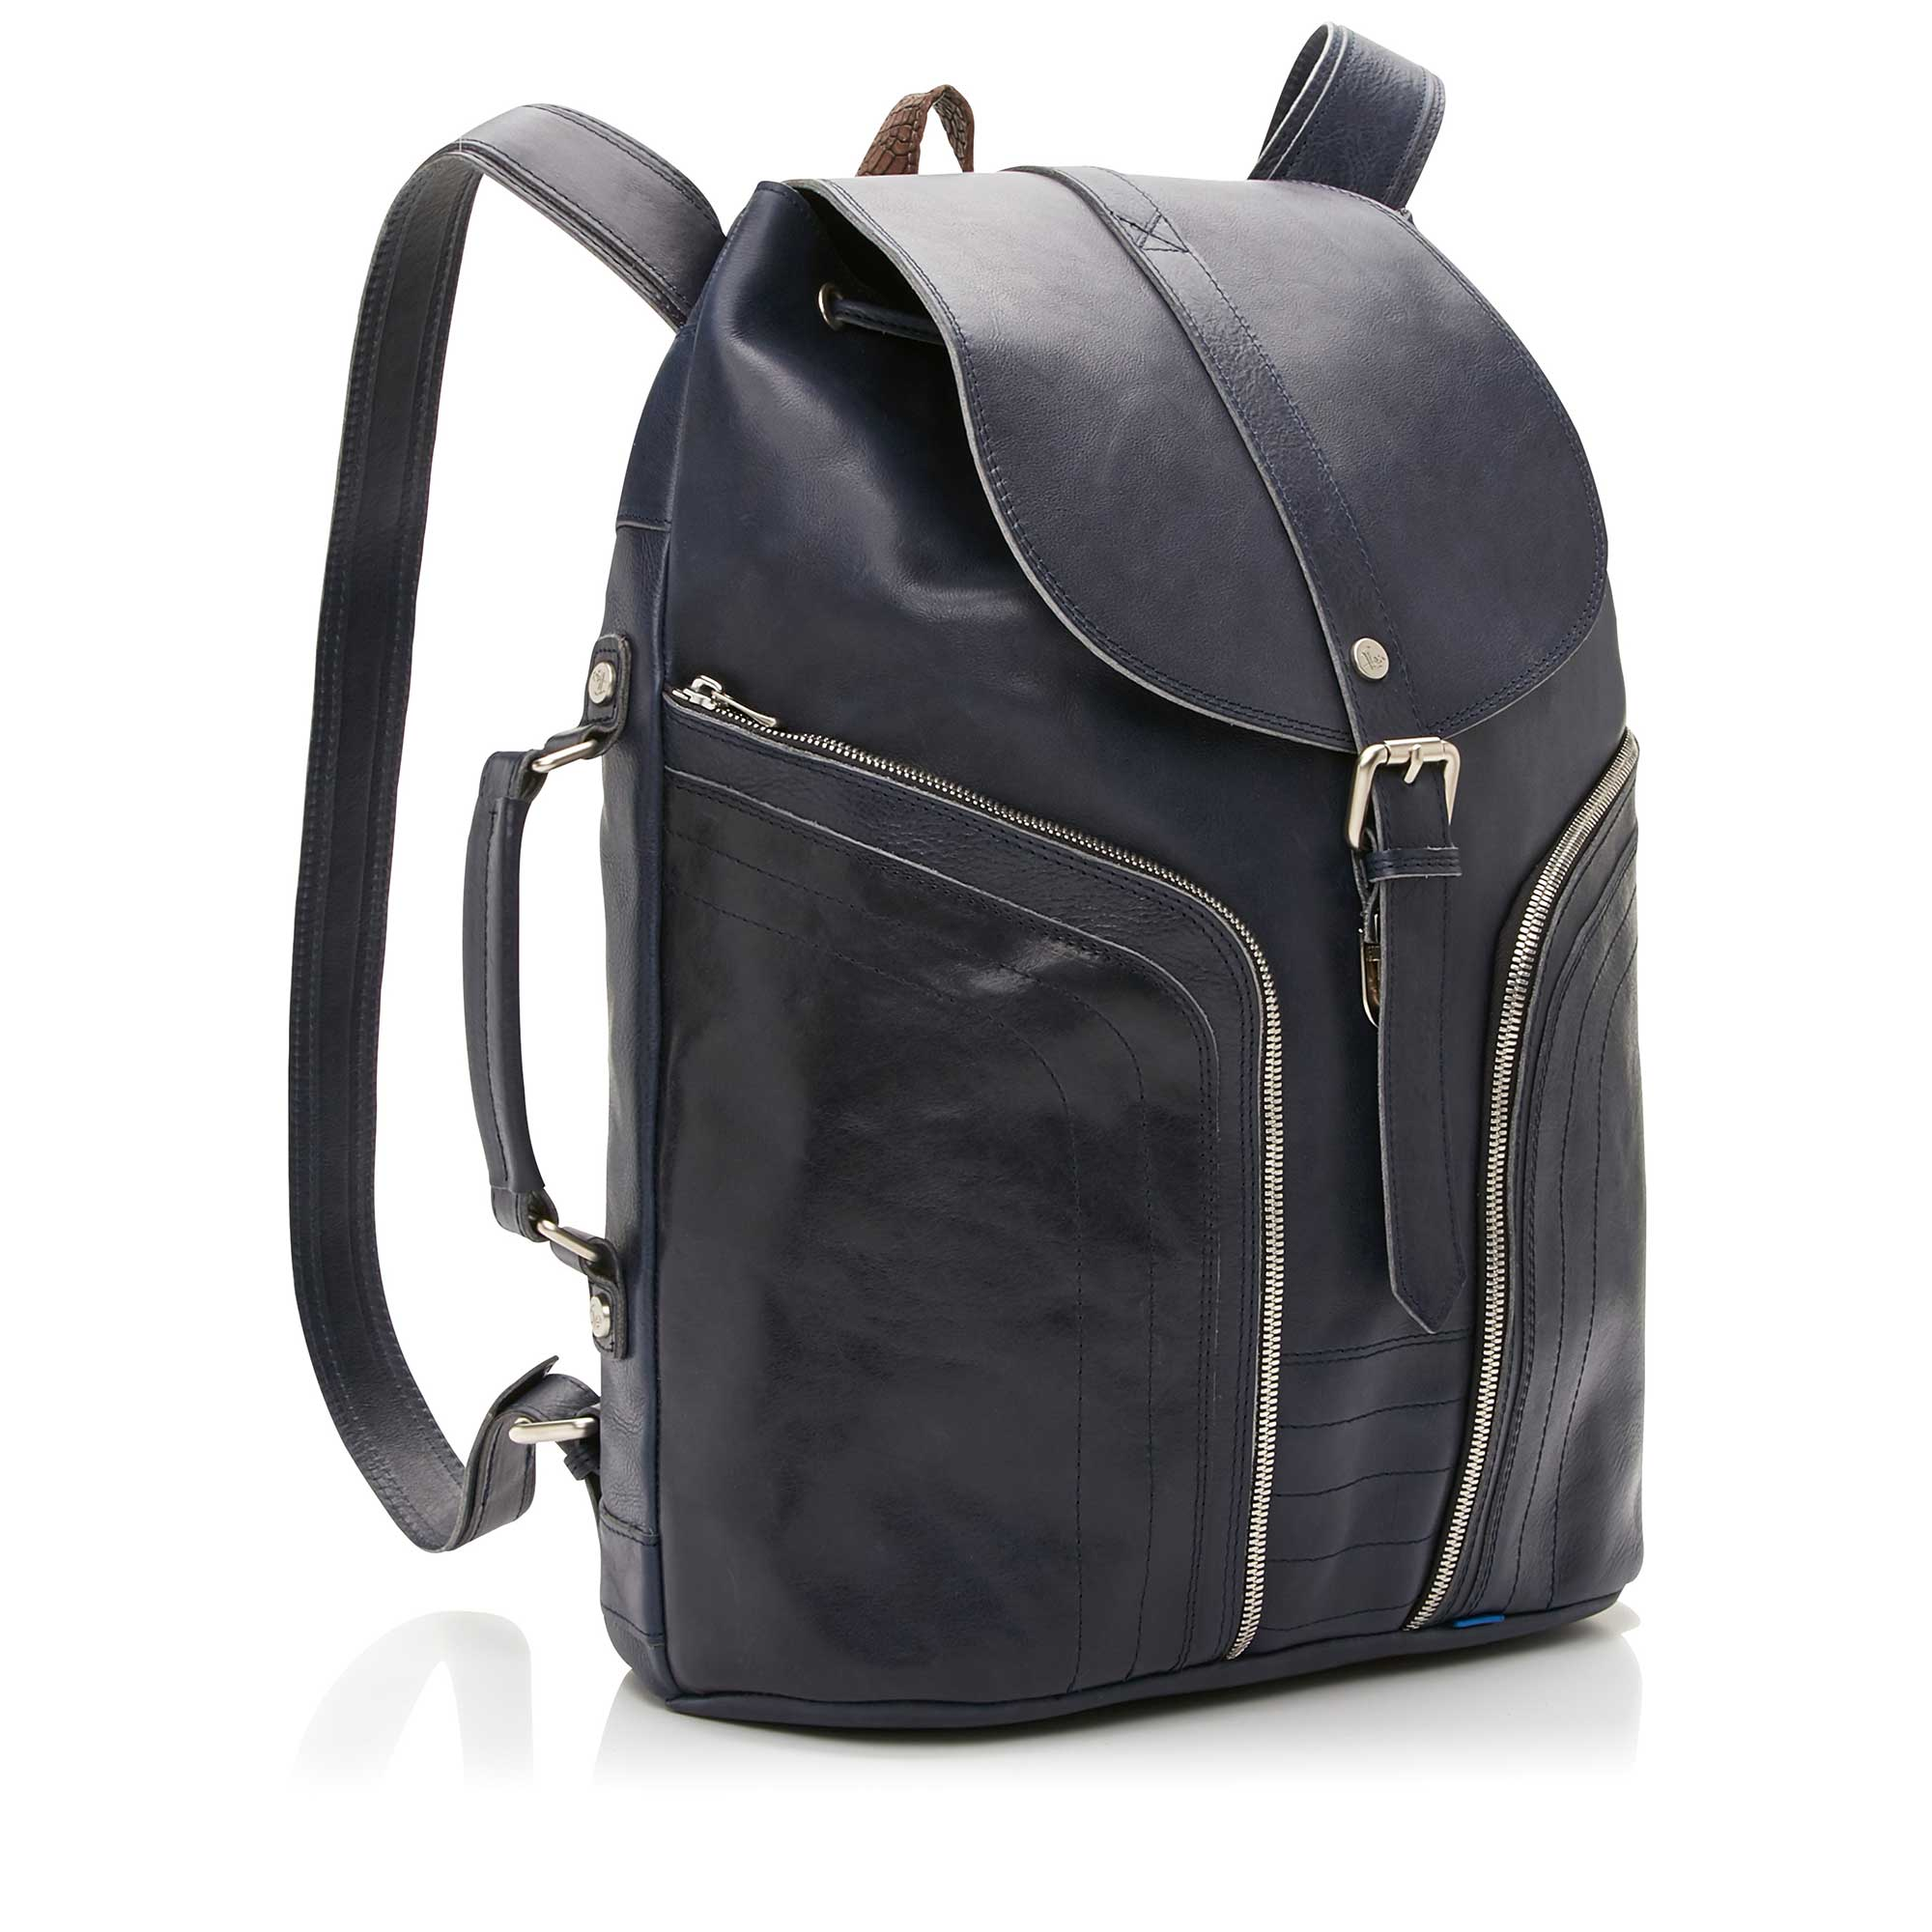 53020/00 - Floris van Bommel blue leather backpack